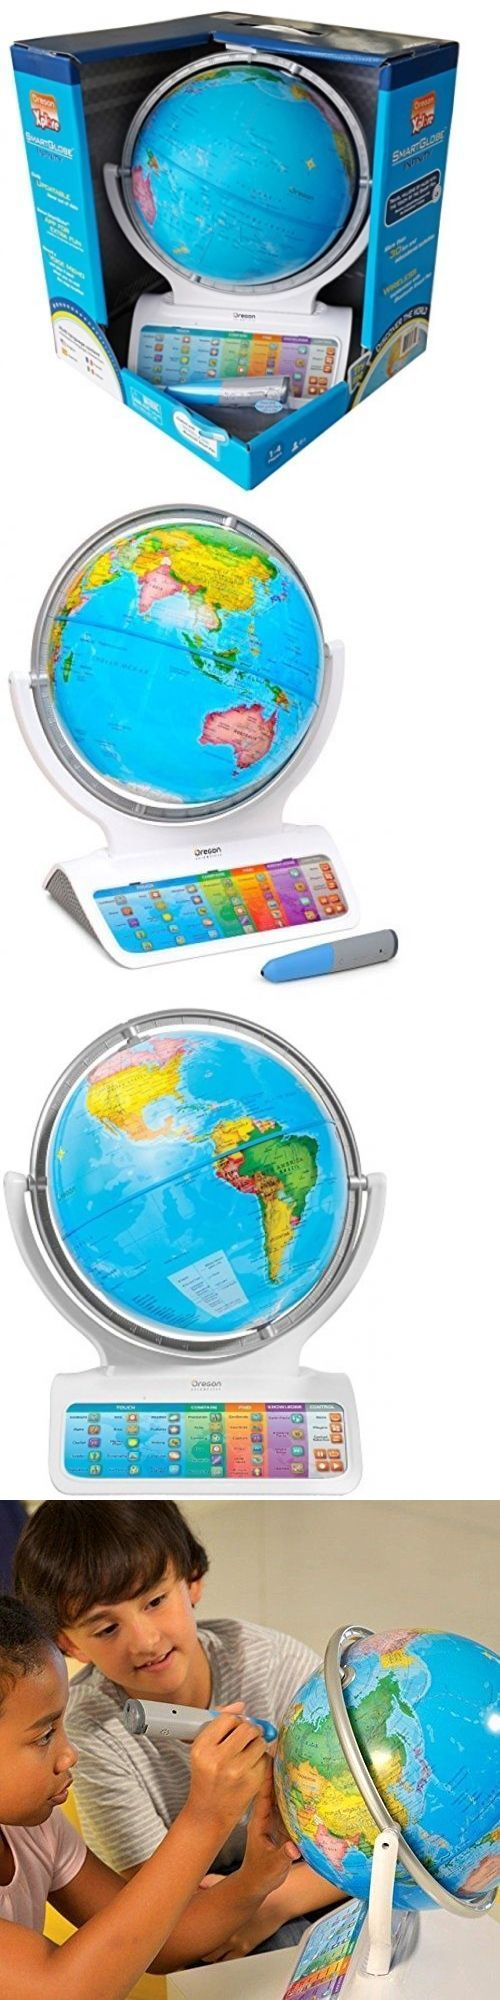 Geography and History 11733: Smart Globe Infinity Sg318 Interactive Globe With Wireless Smart Pen Educational -> BUY IT NOW ONLY: $58.95 on eBay!